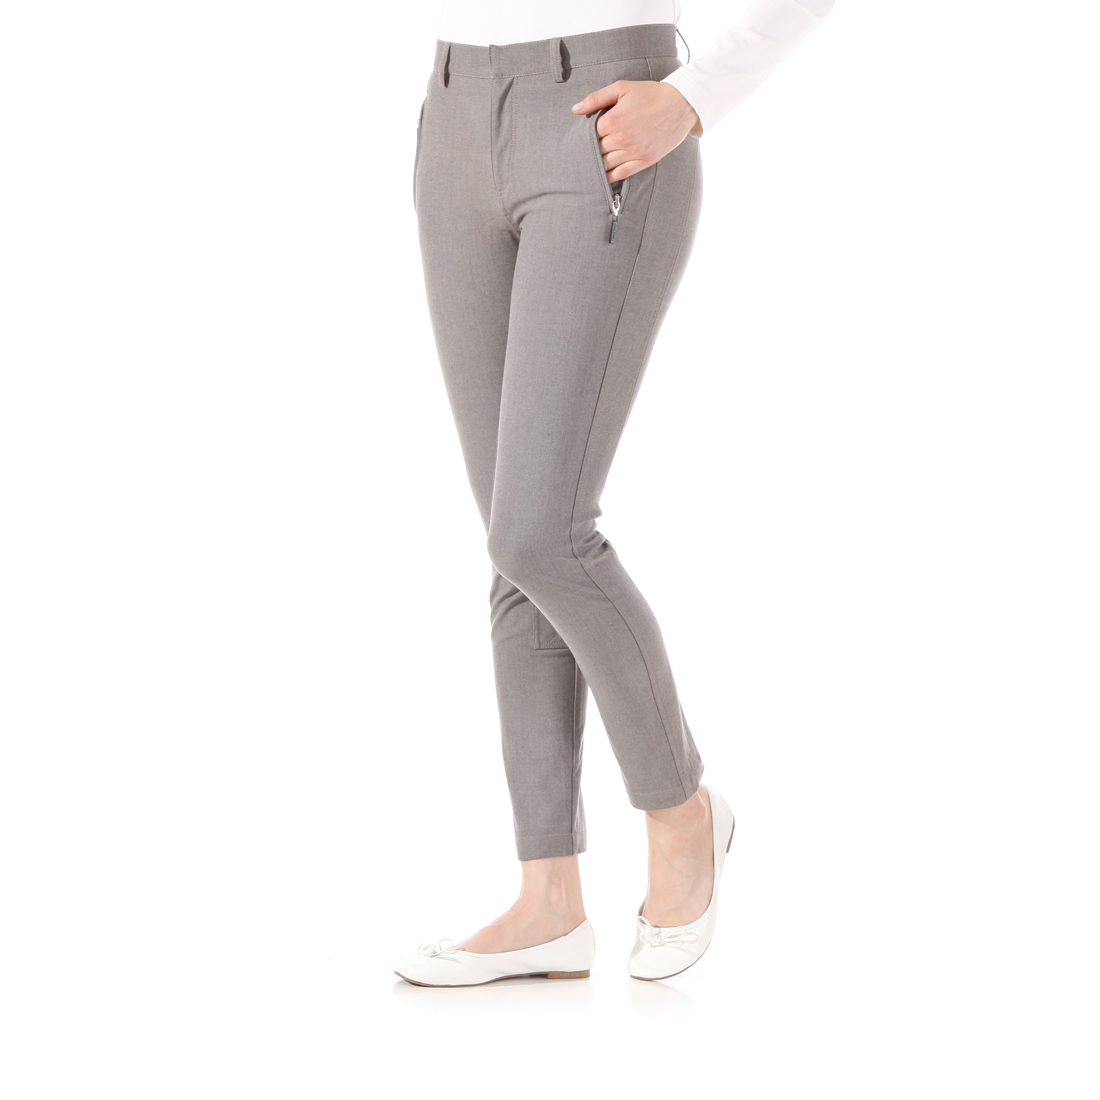 Damen Techno Stretch Hose